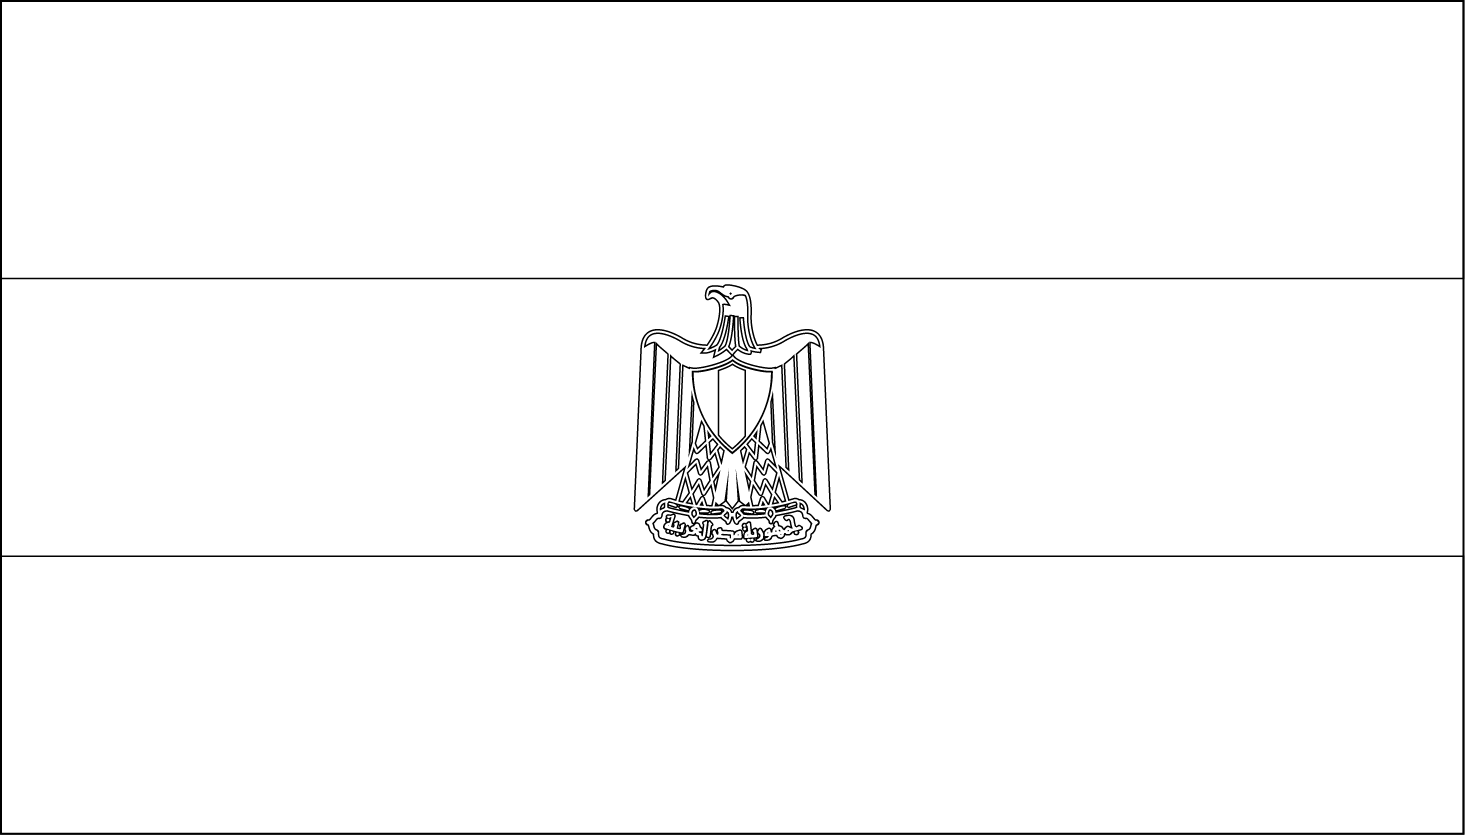 egyptian flag coloring pages - photo#12